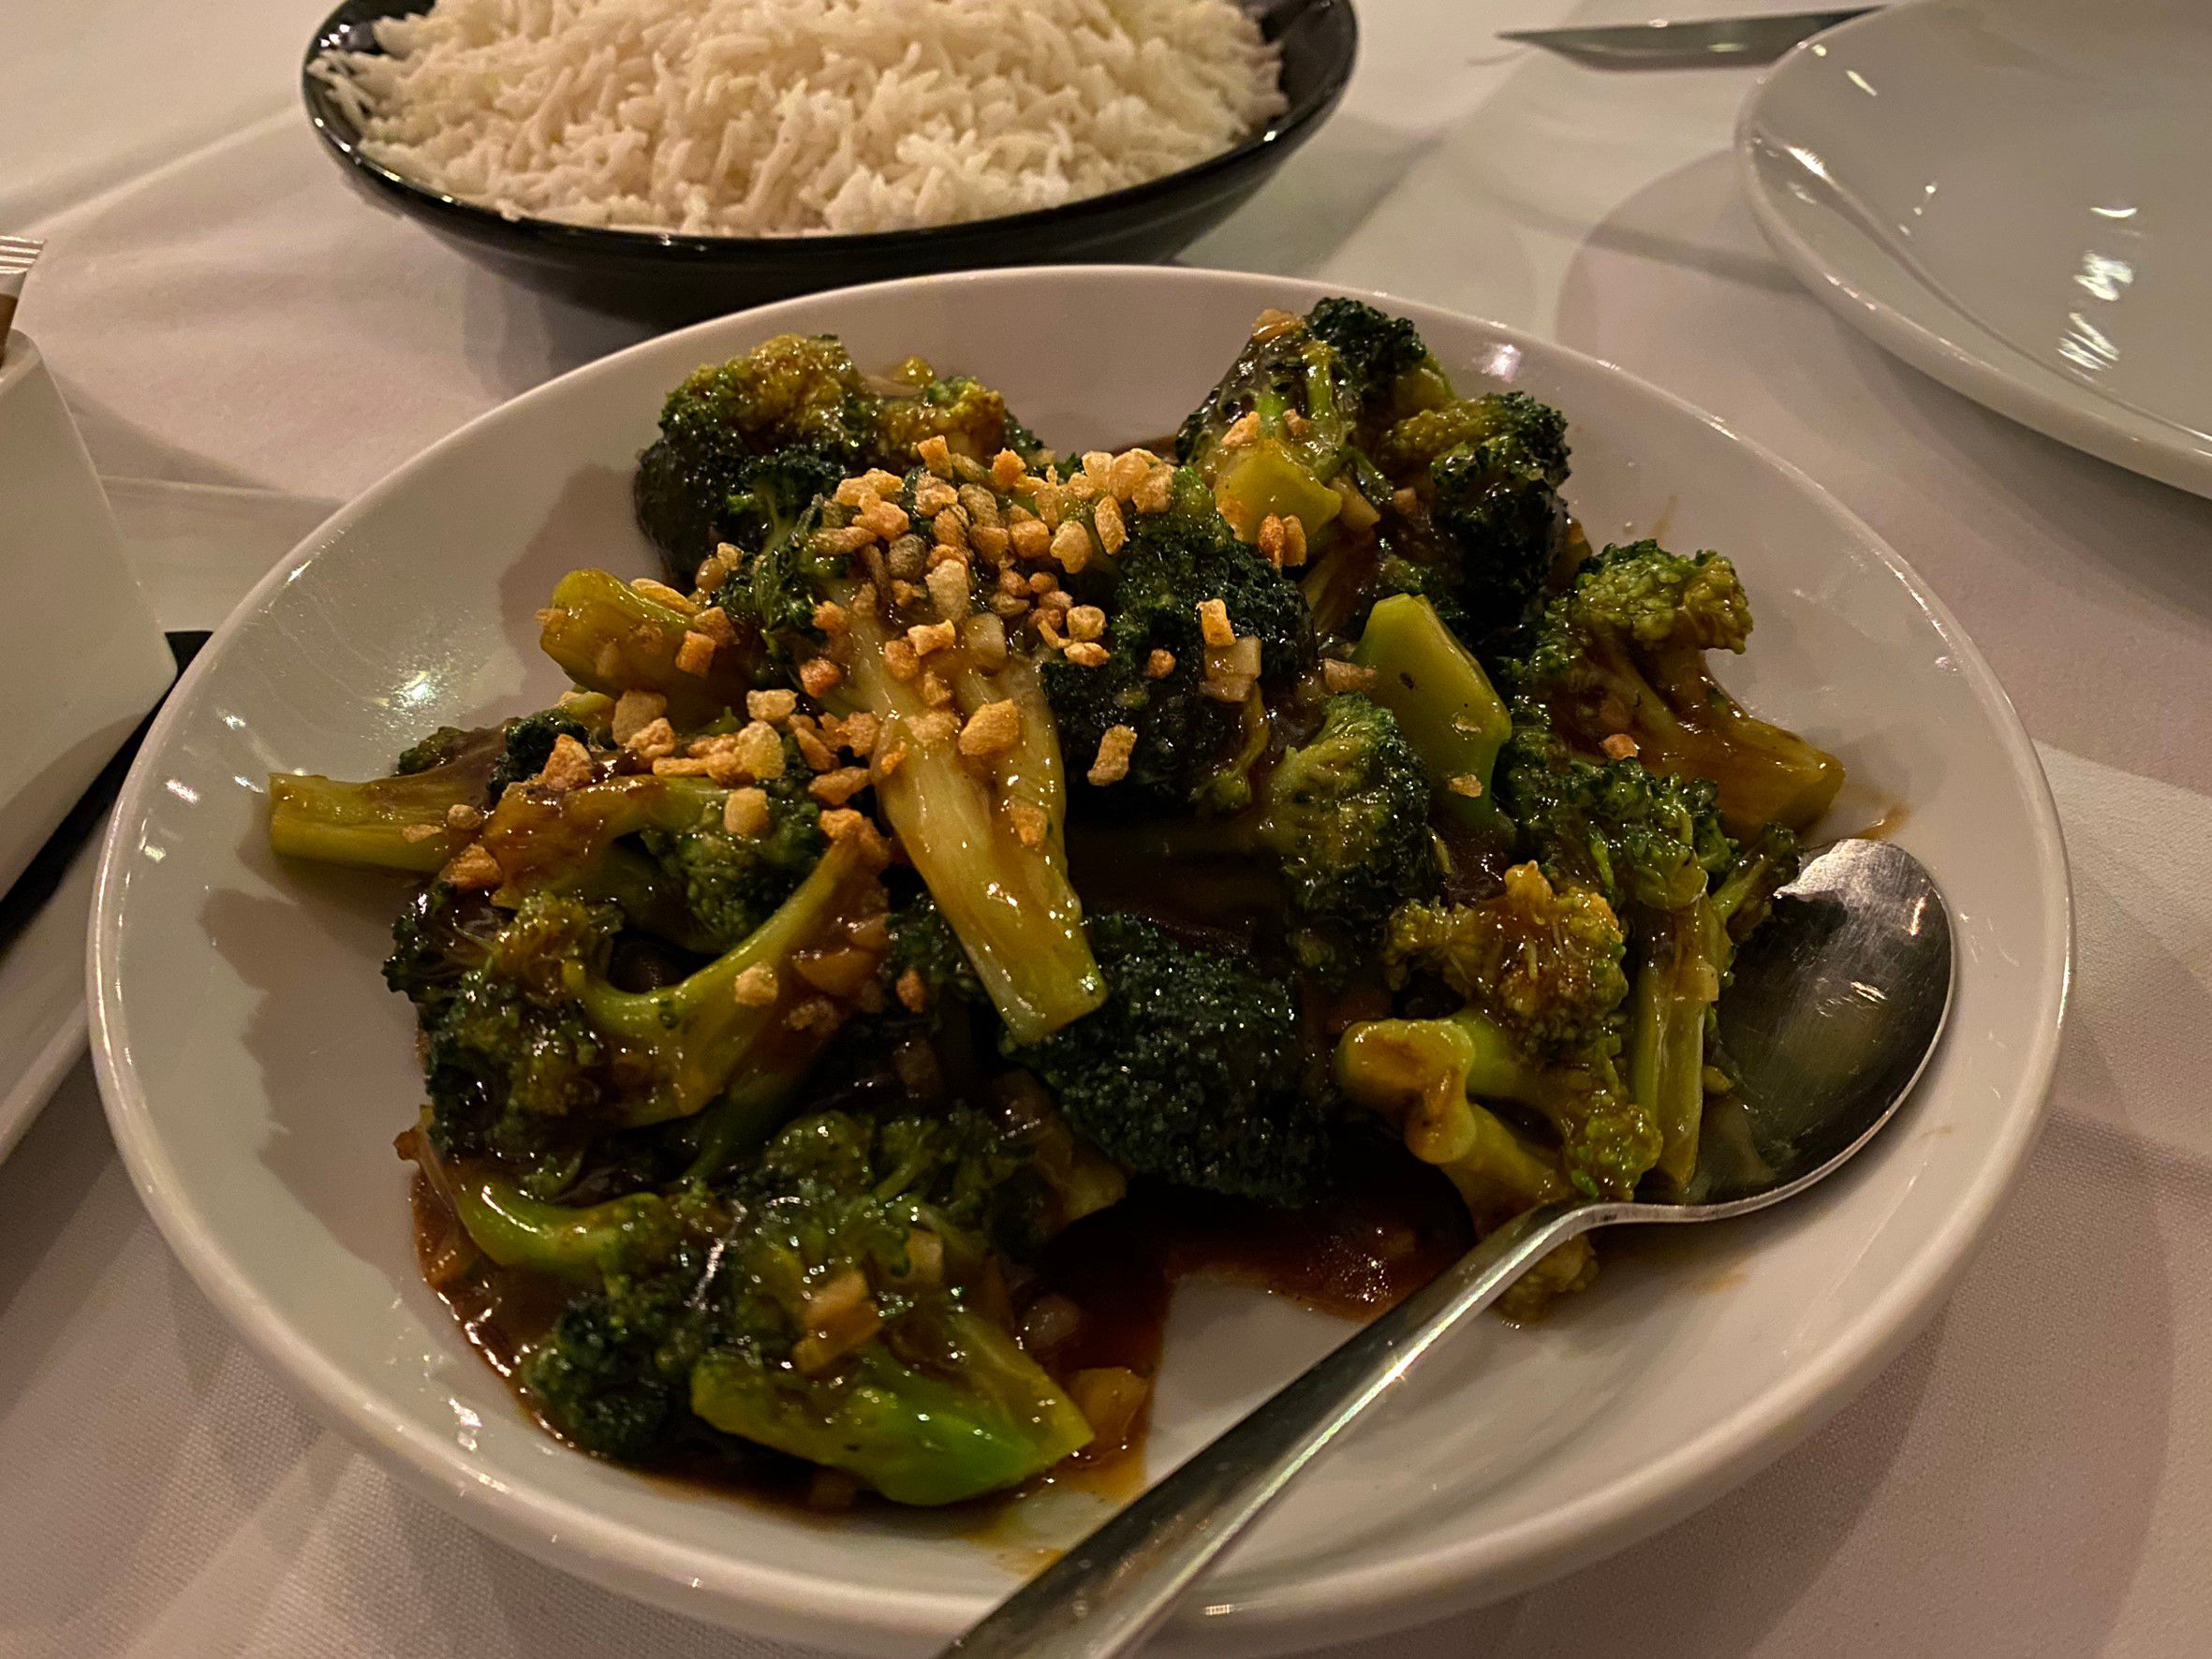 fried broccoli with oyster